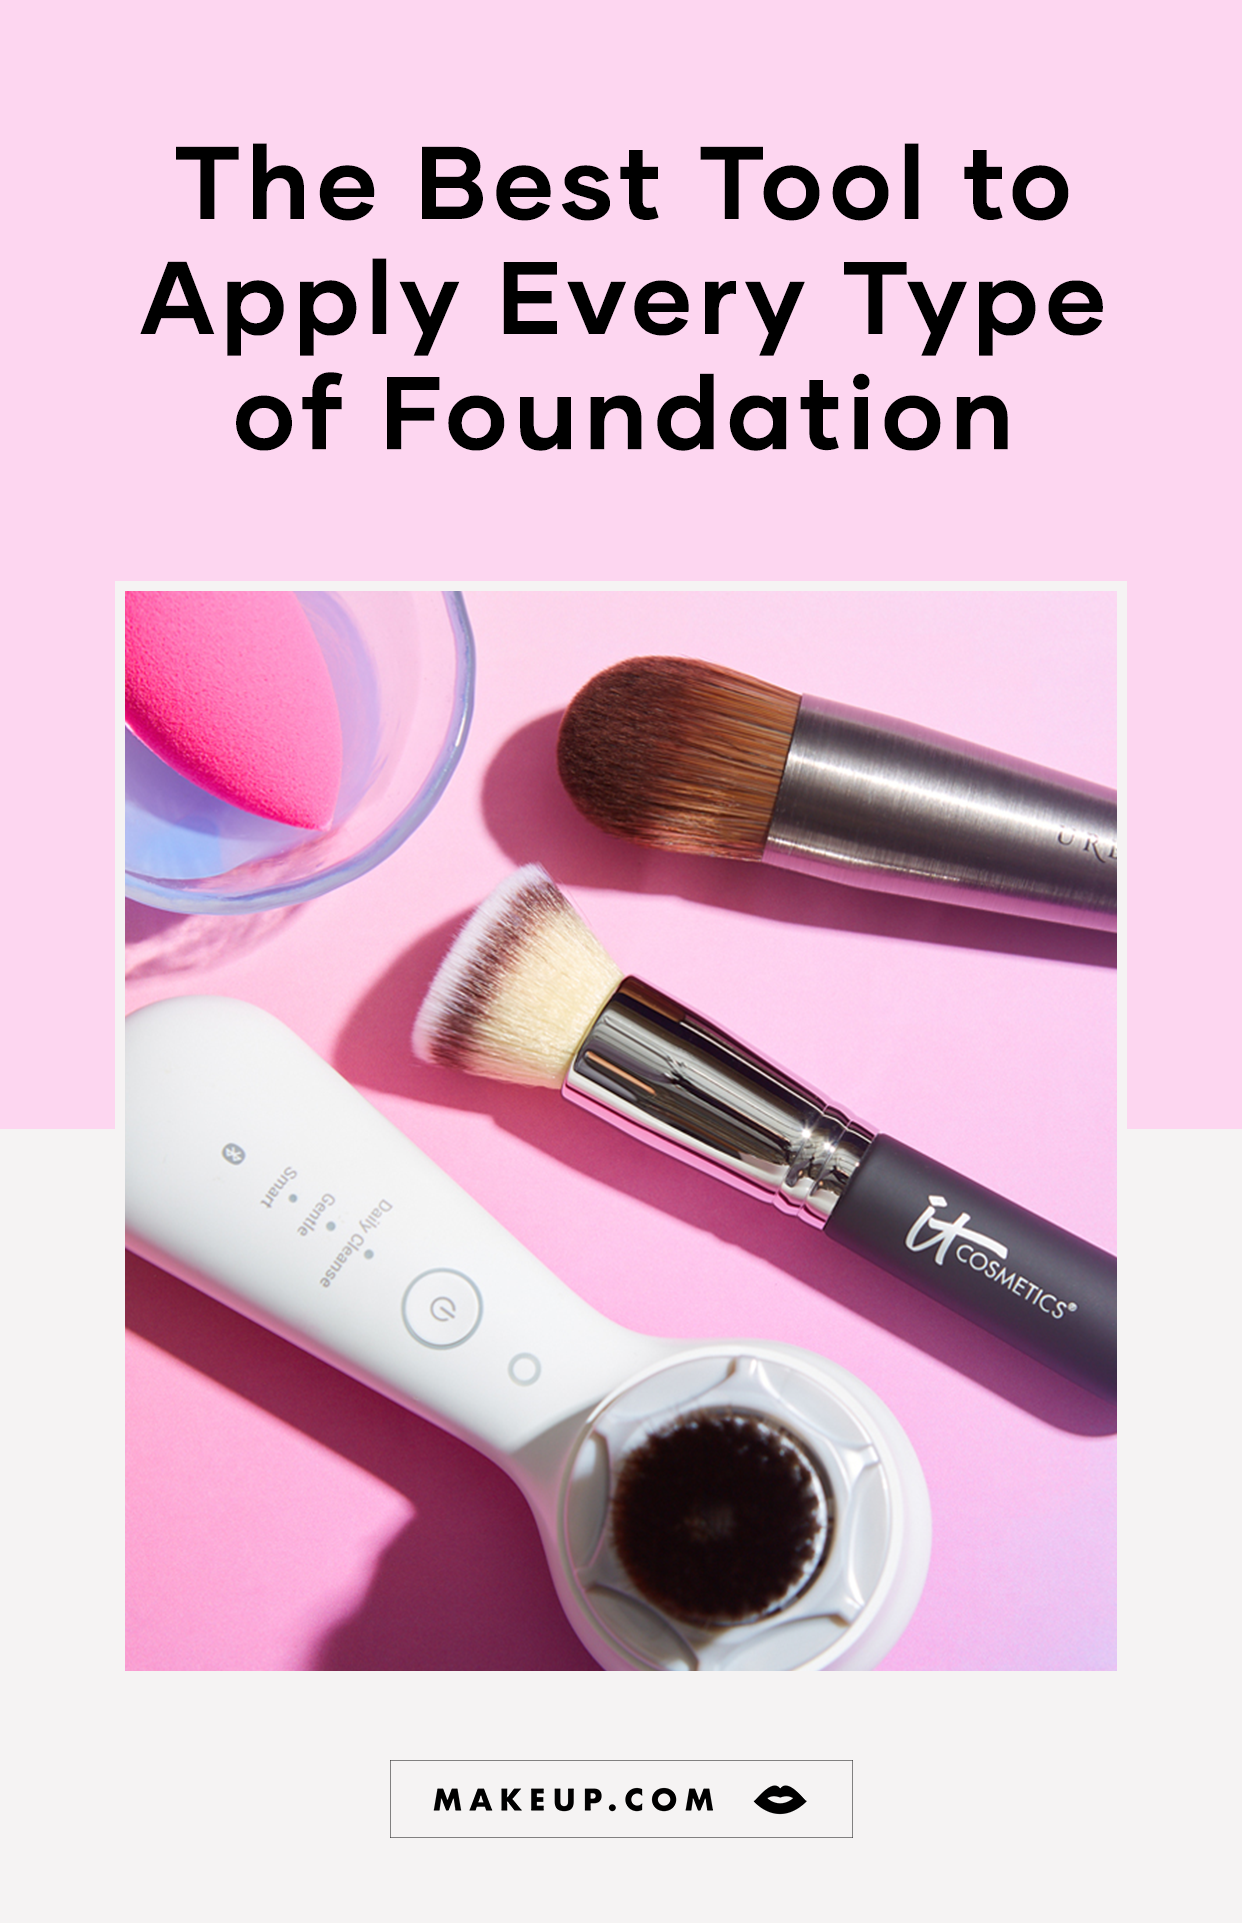 The Best Tool for Applying Different Types of Foundation